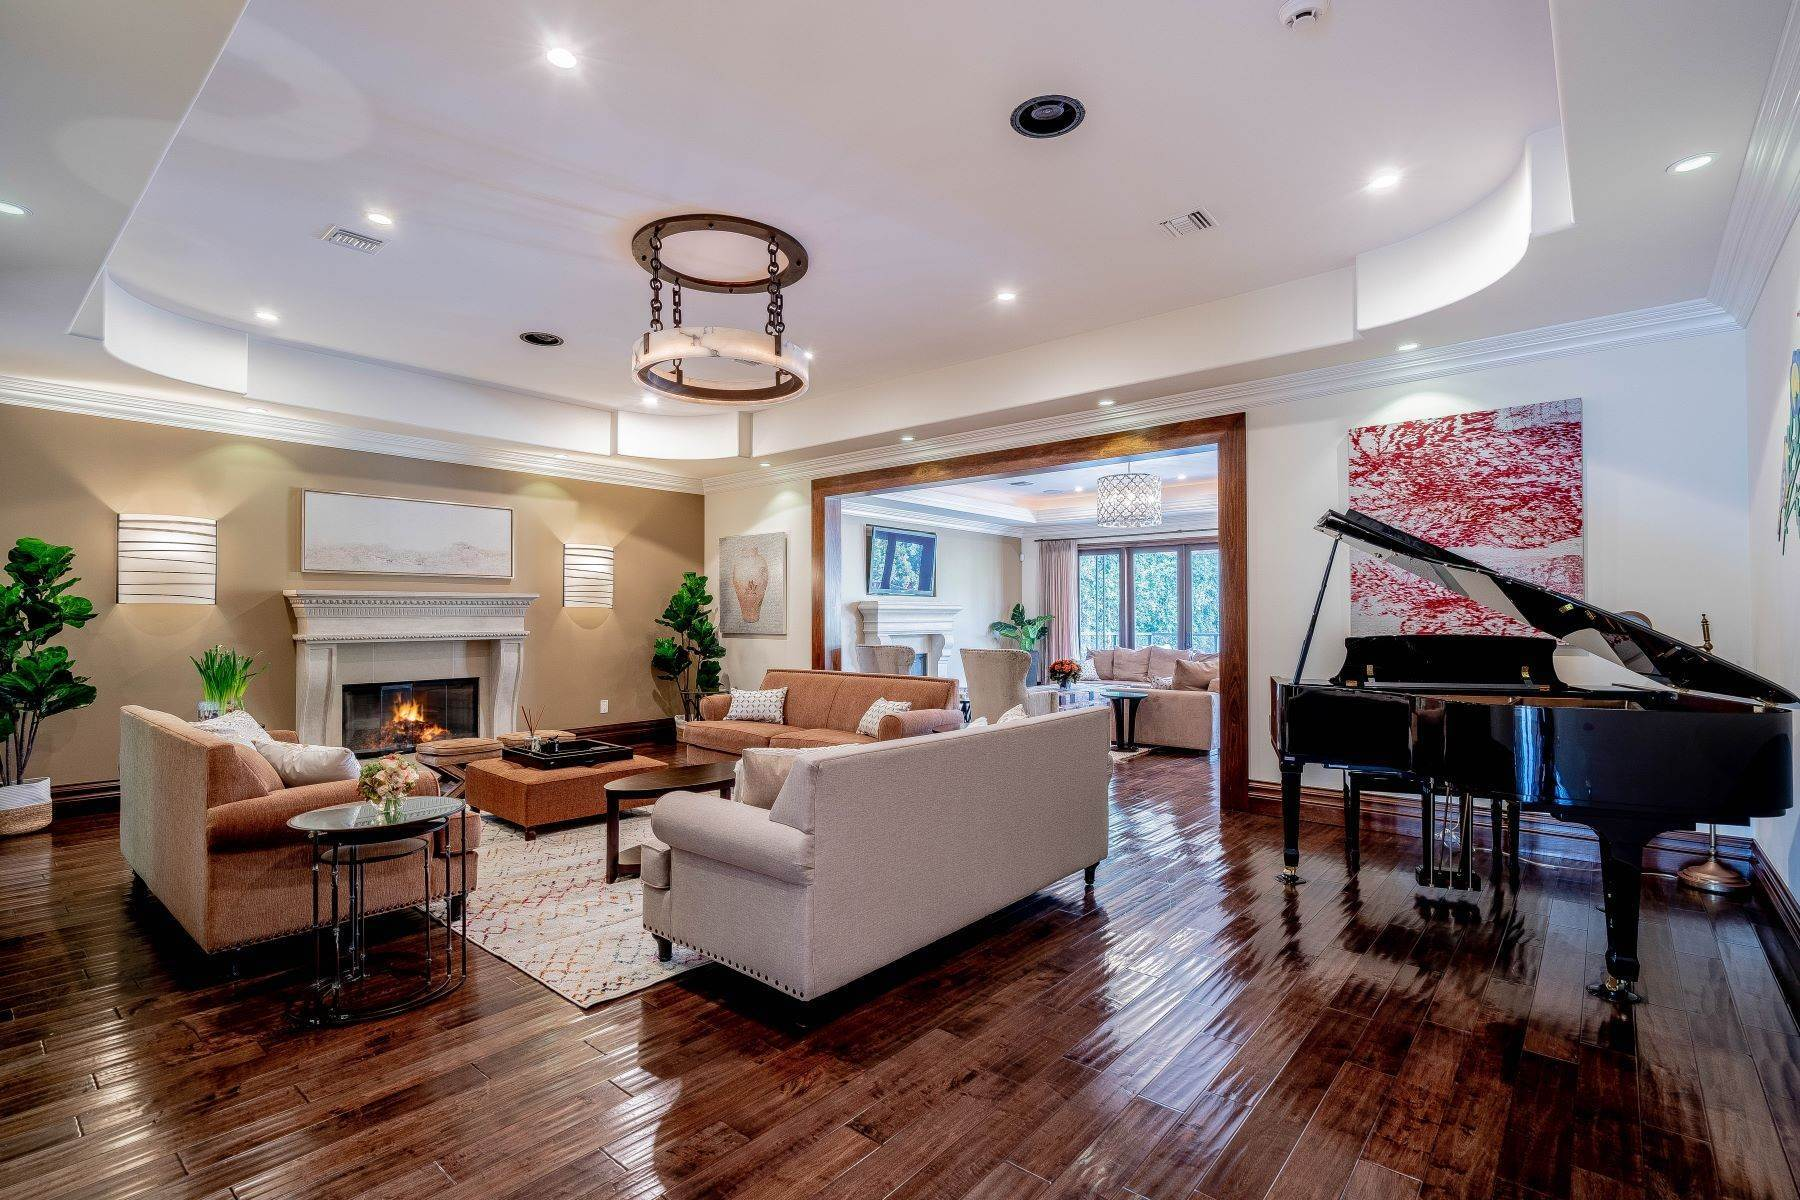 Single Family Homes for Sale at 249 South Westgate Avenue Los Angeles, California 90049 United States